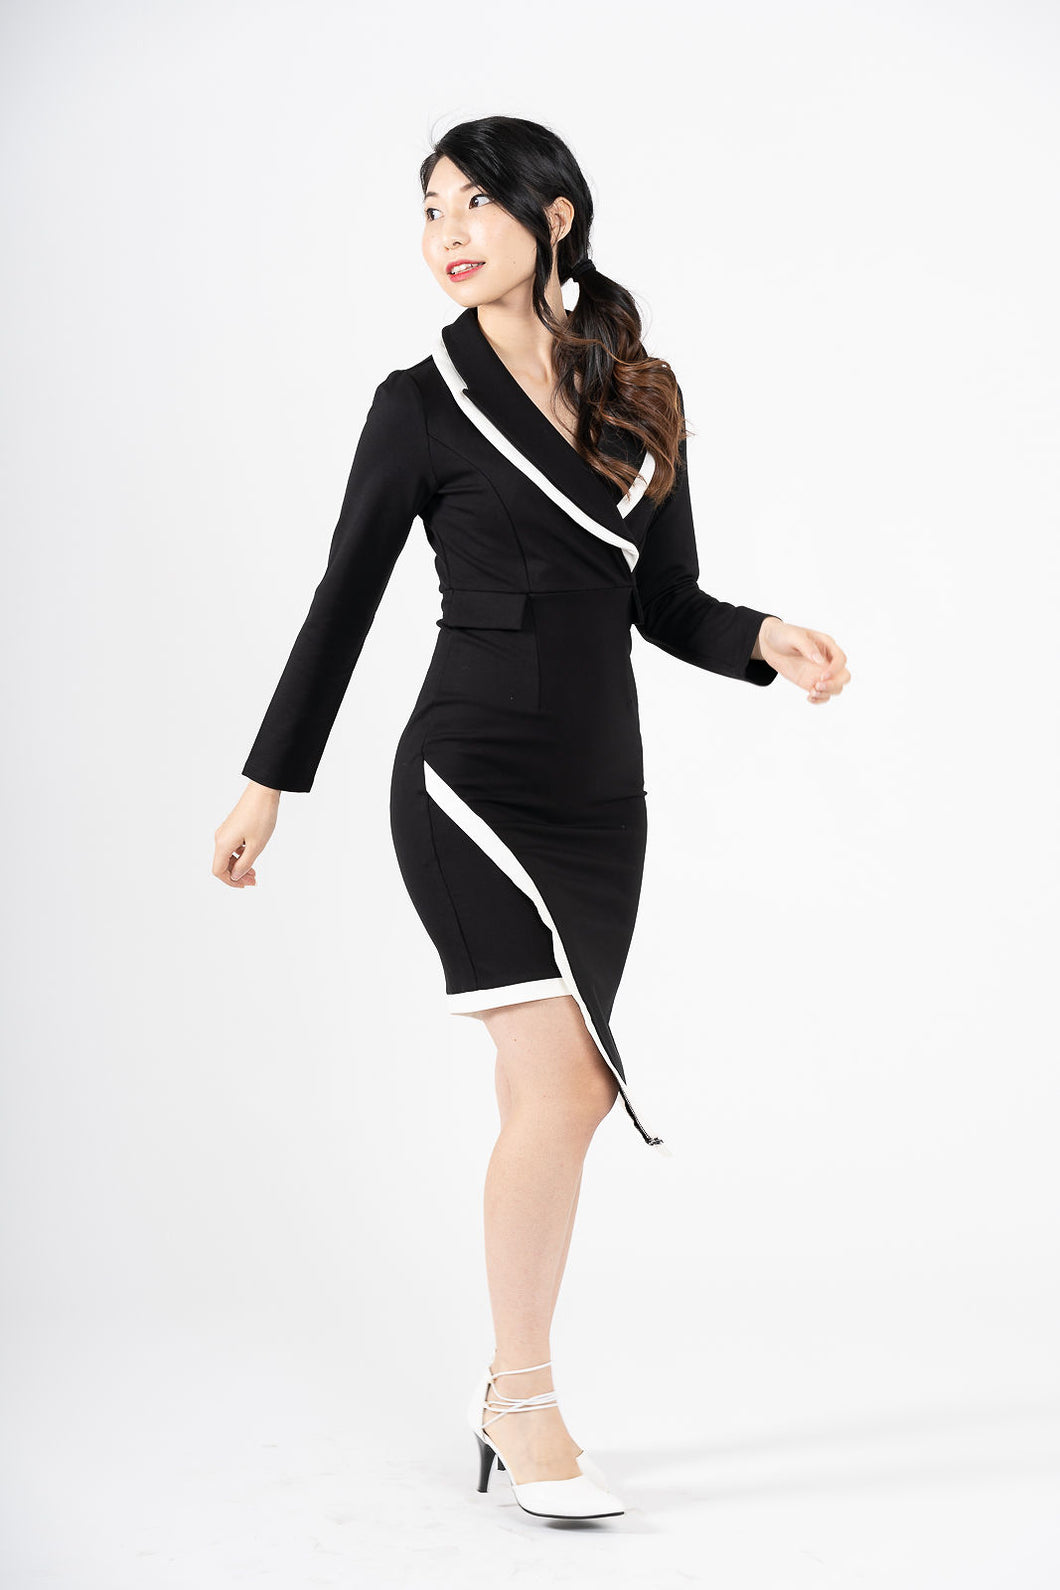 Confindente Asymmetric Black & White Bodycon Blazer Dress